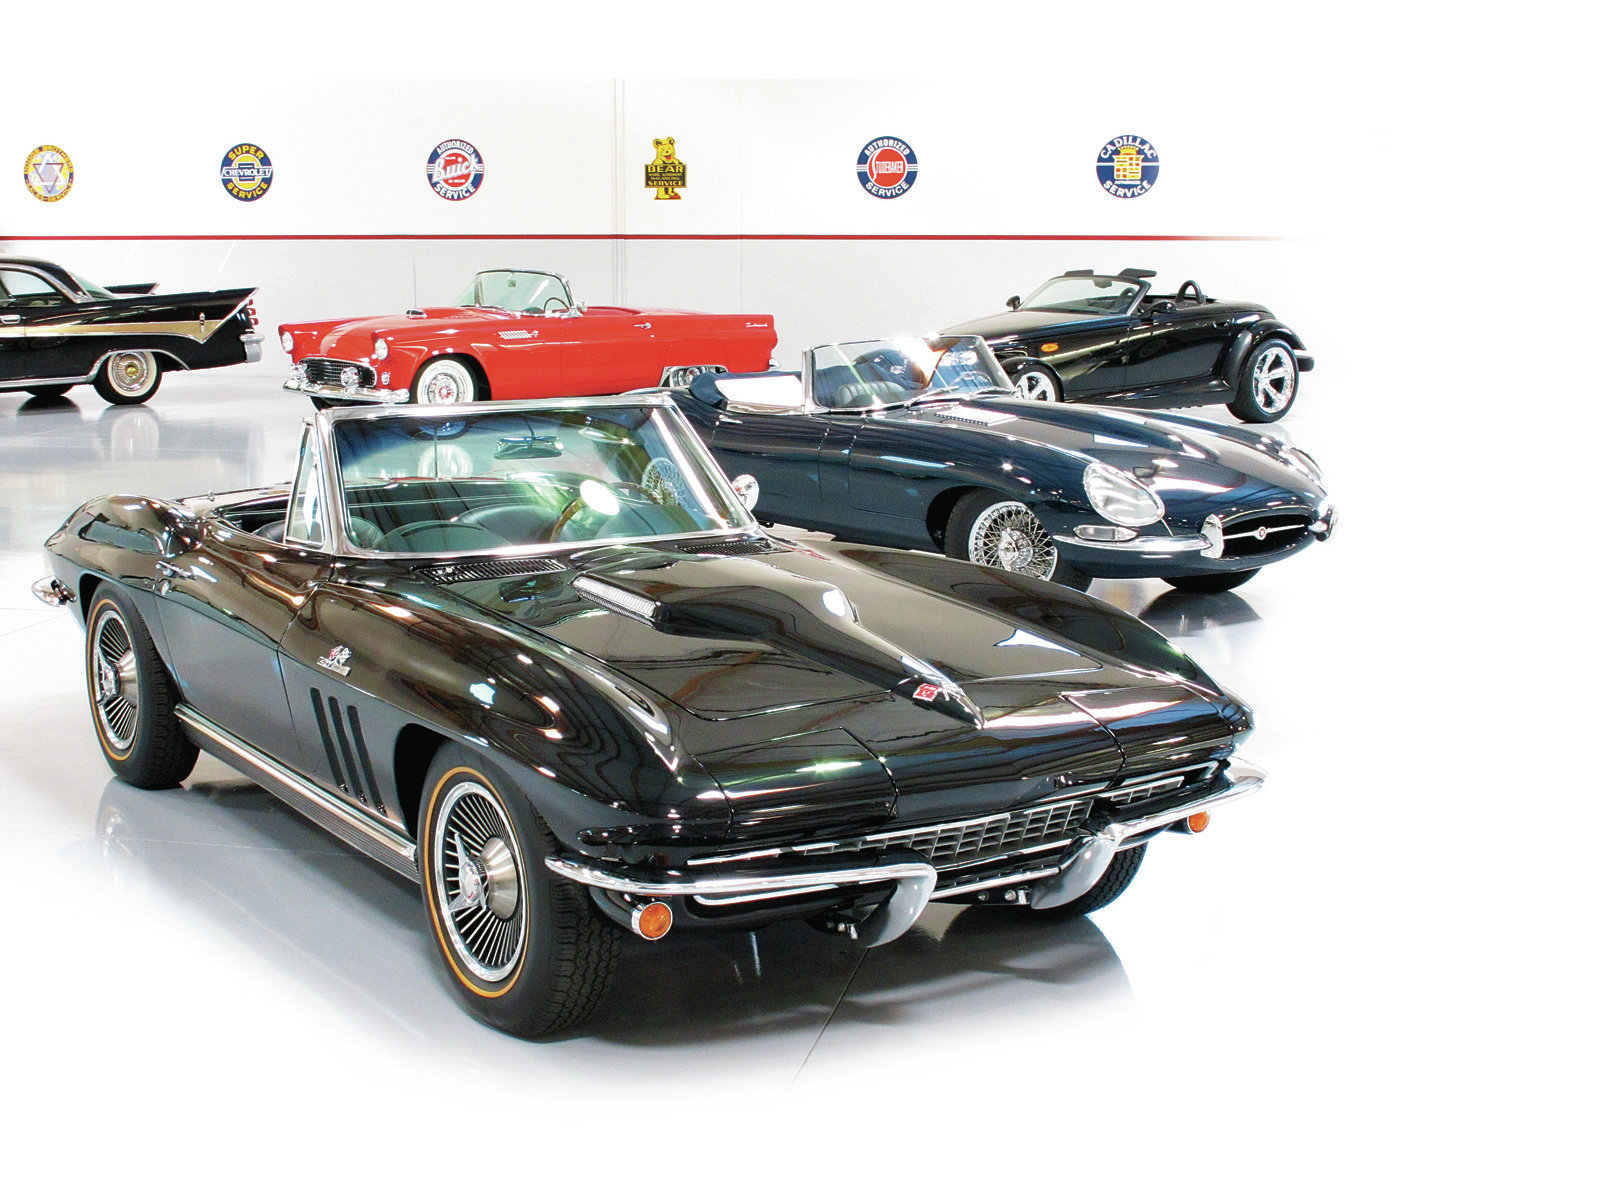 Carpenter's collection is varied, to say the least, and includes muscle cars, sports cars, '50s cars, even a couple of Ferraris.